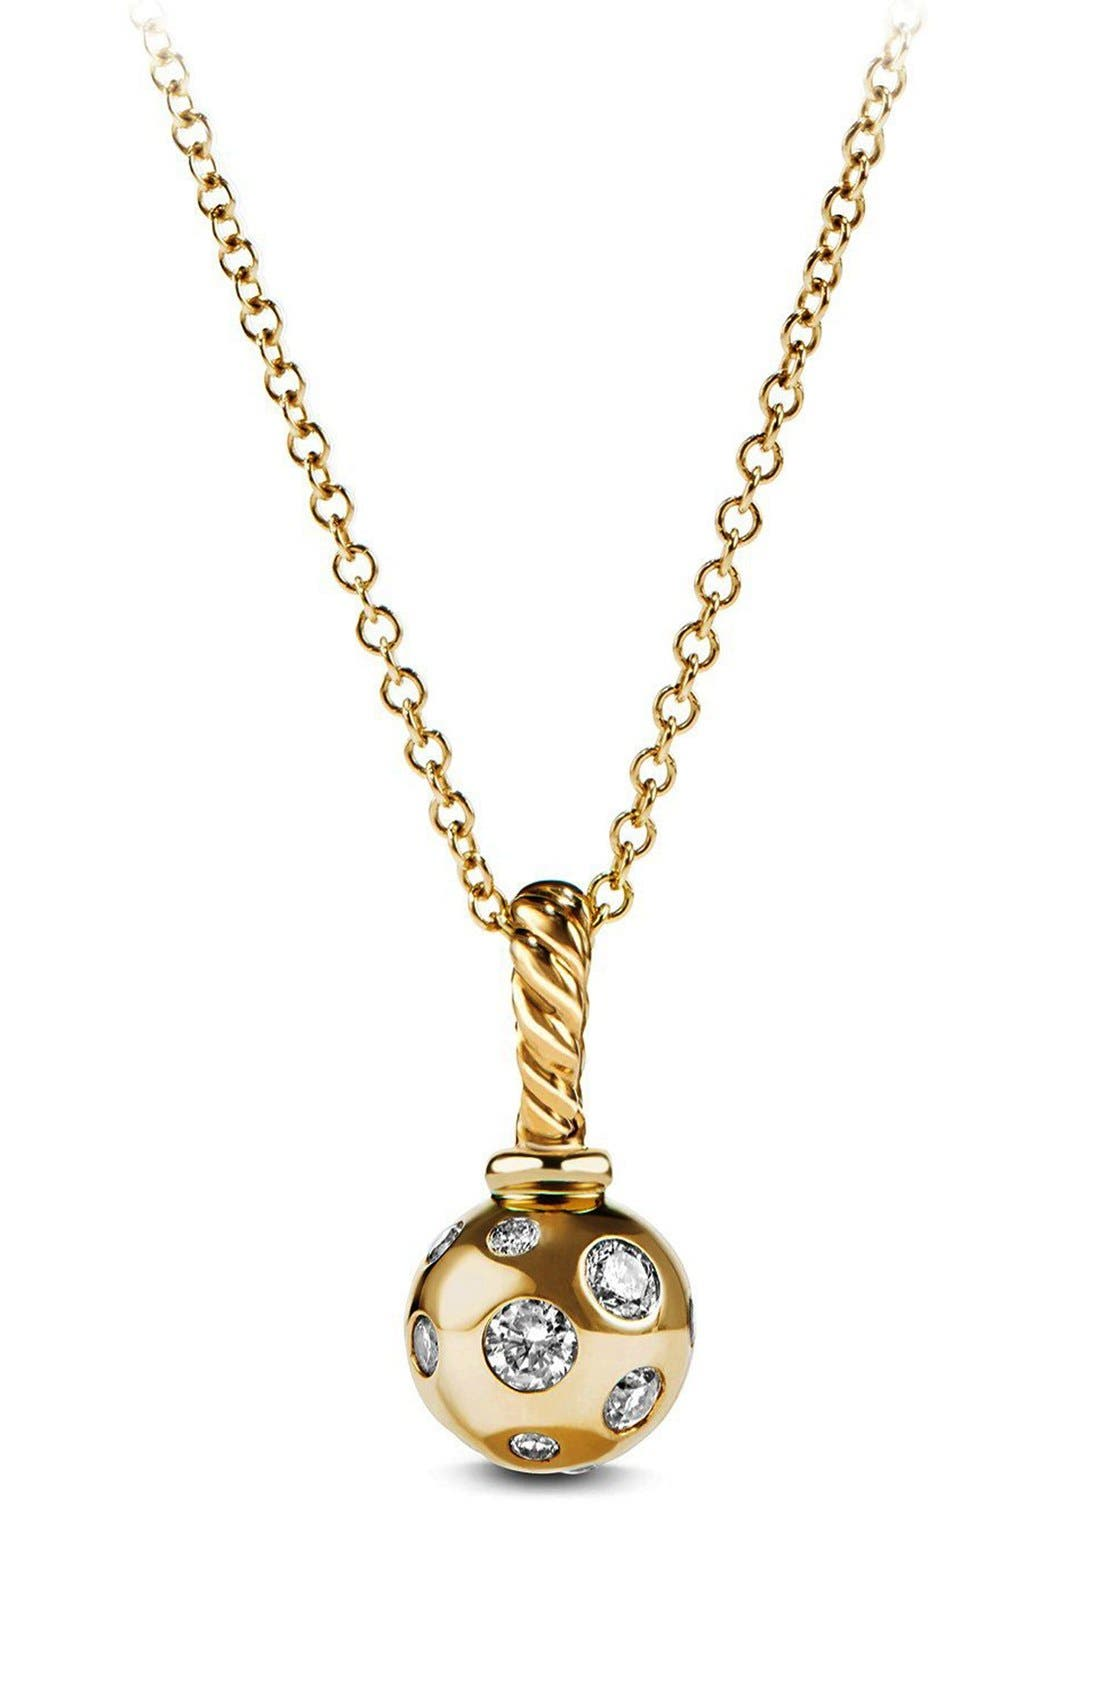 Main Image - David Yurman Pendant with Diamonds in 18K Gold